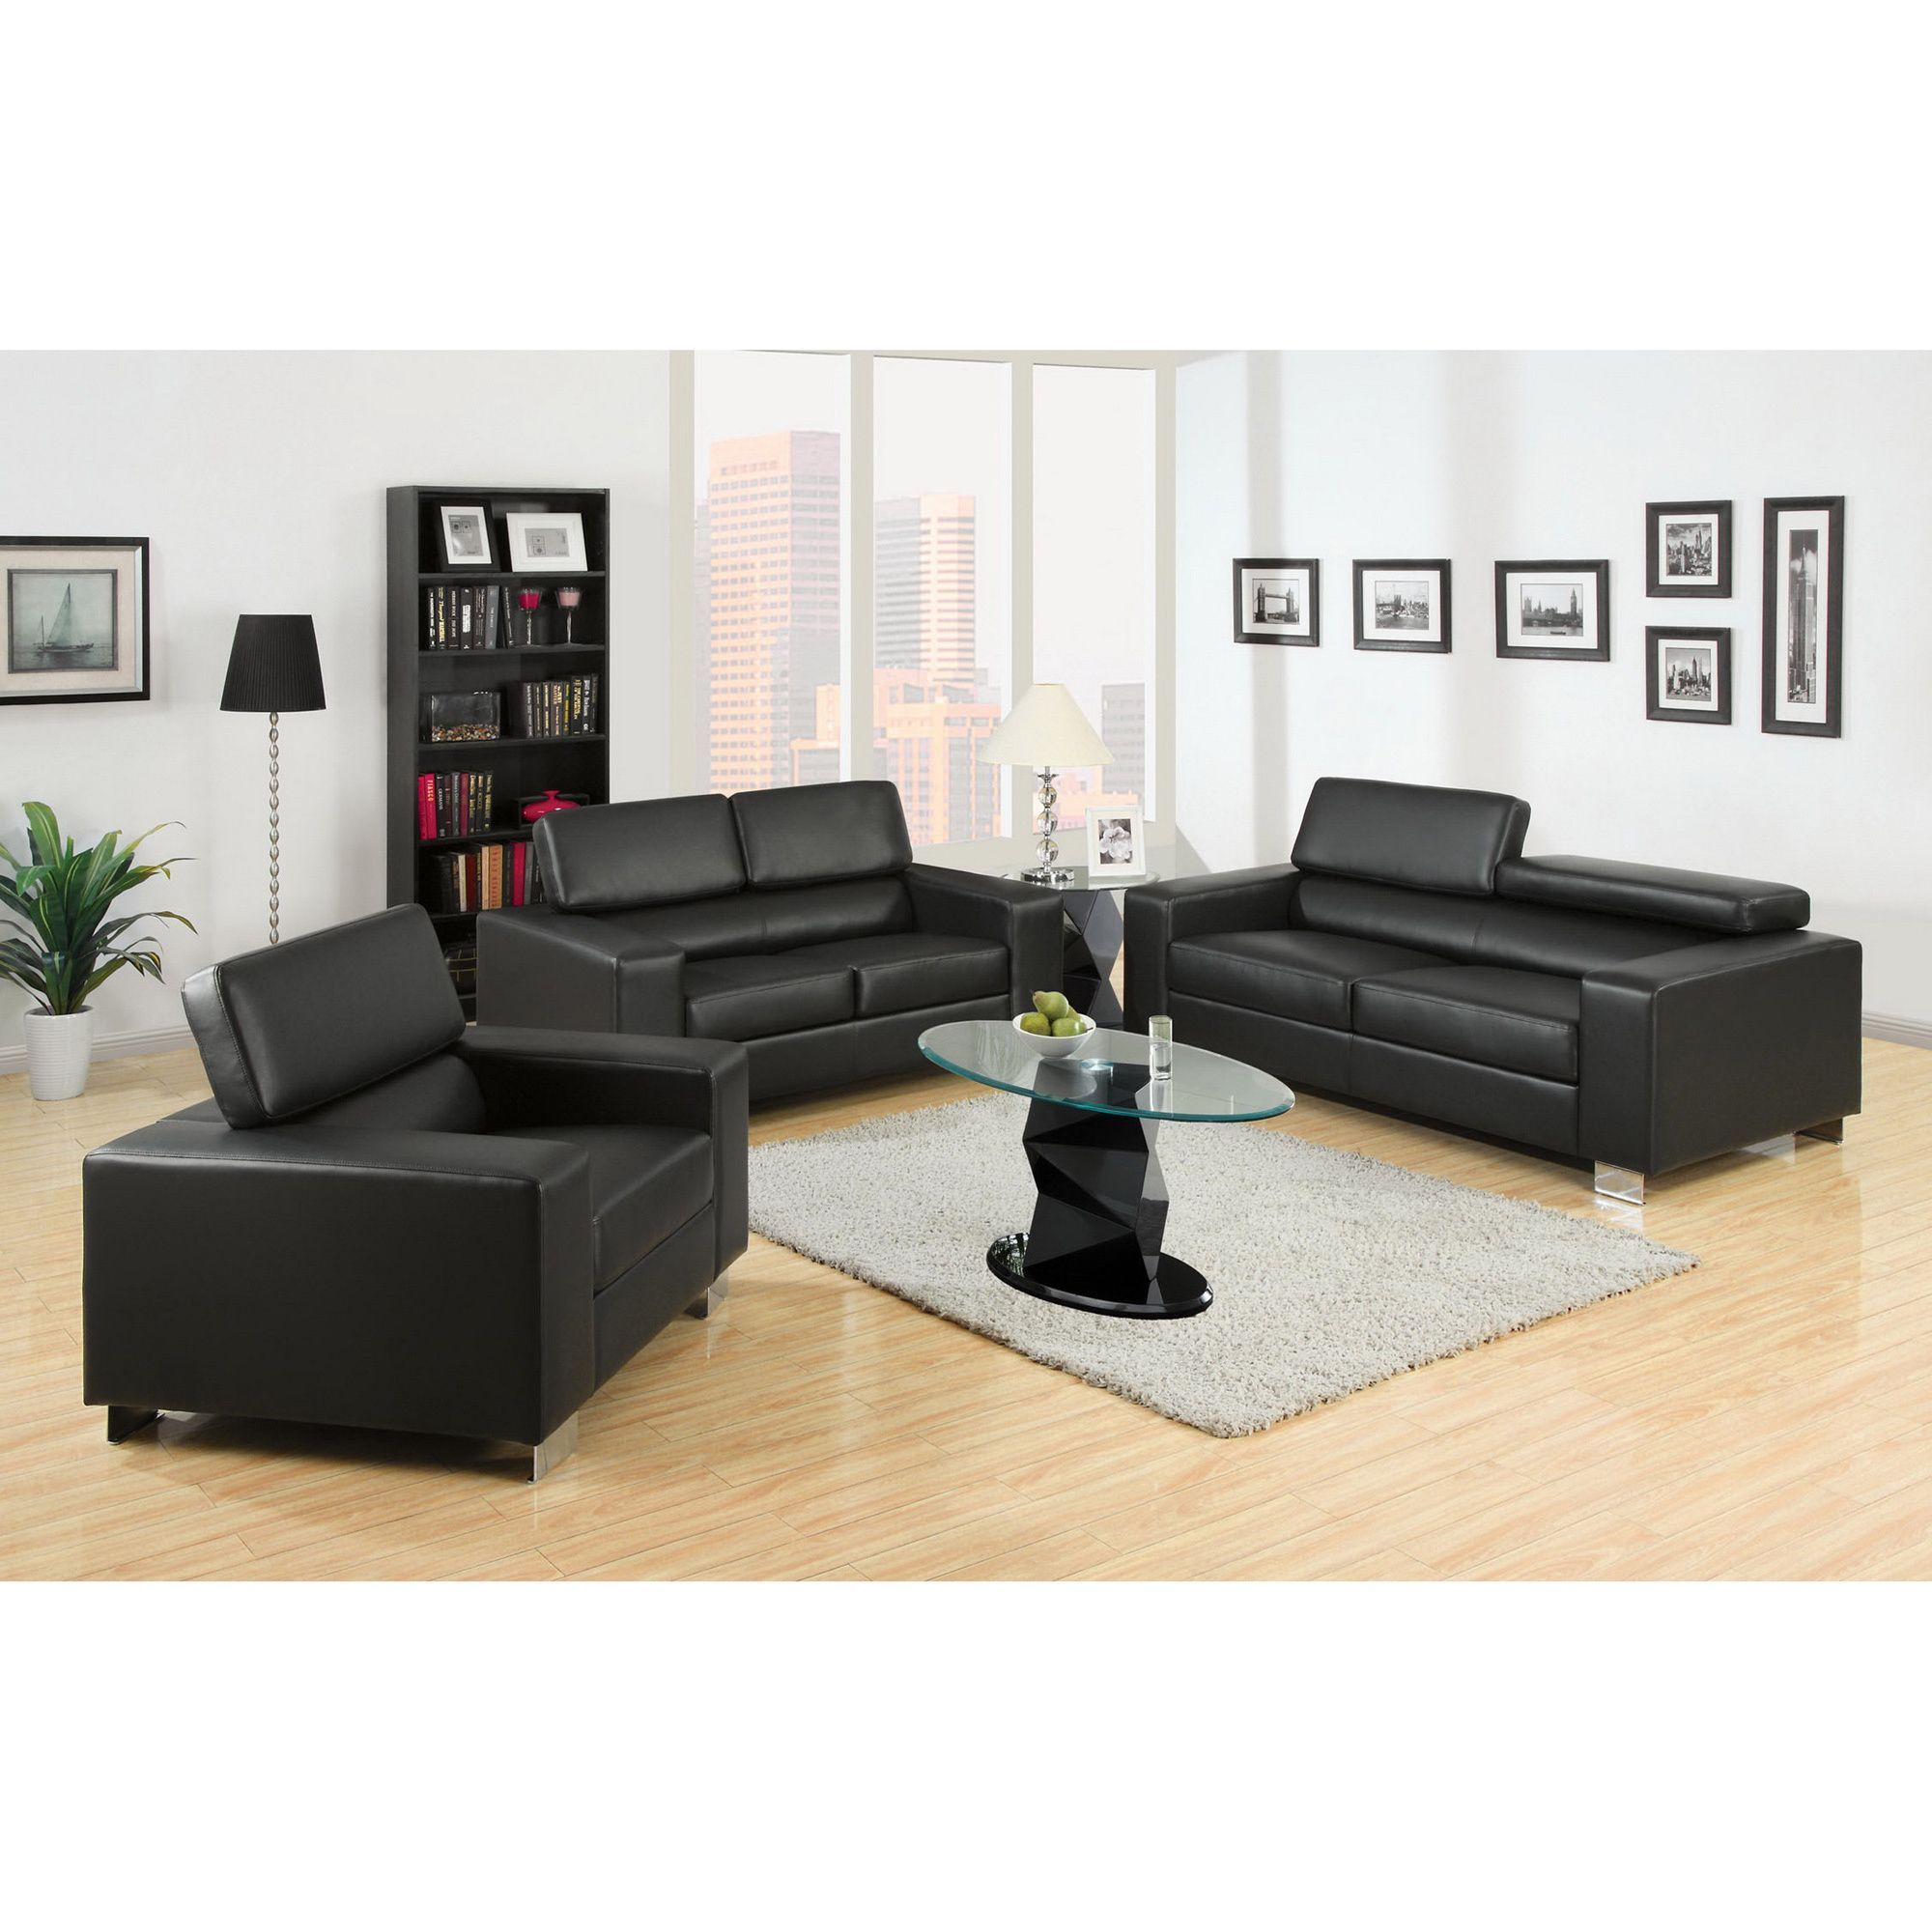 modern set sofa beige chrome foot sets leather hair black design couch and creamy box ideas plus carpet